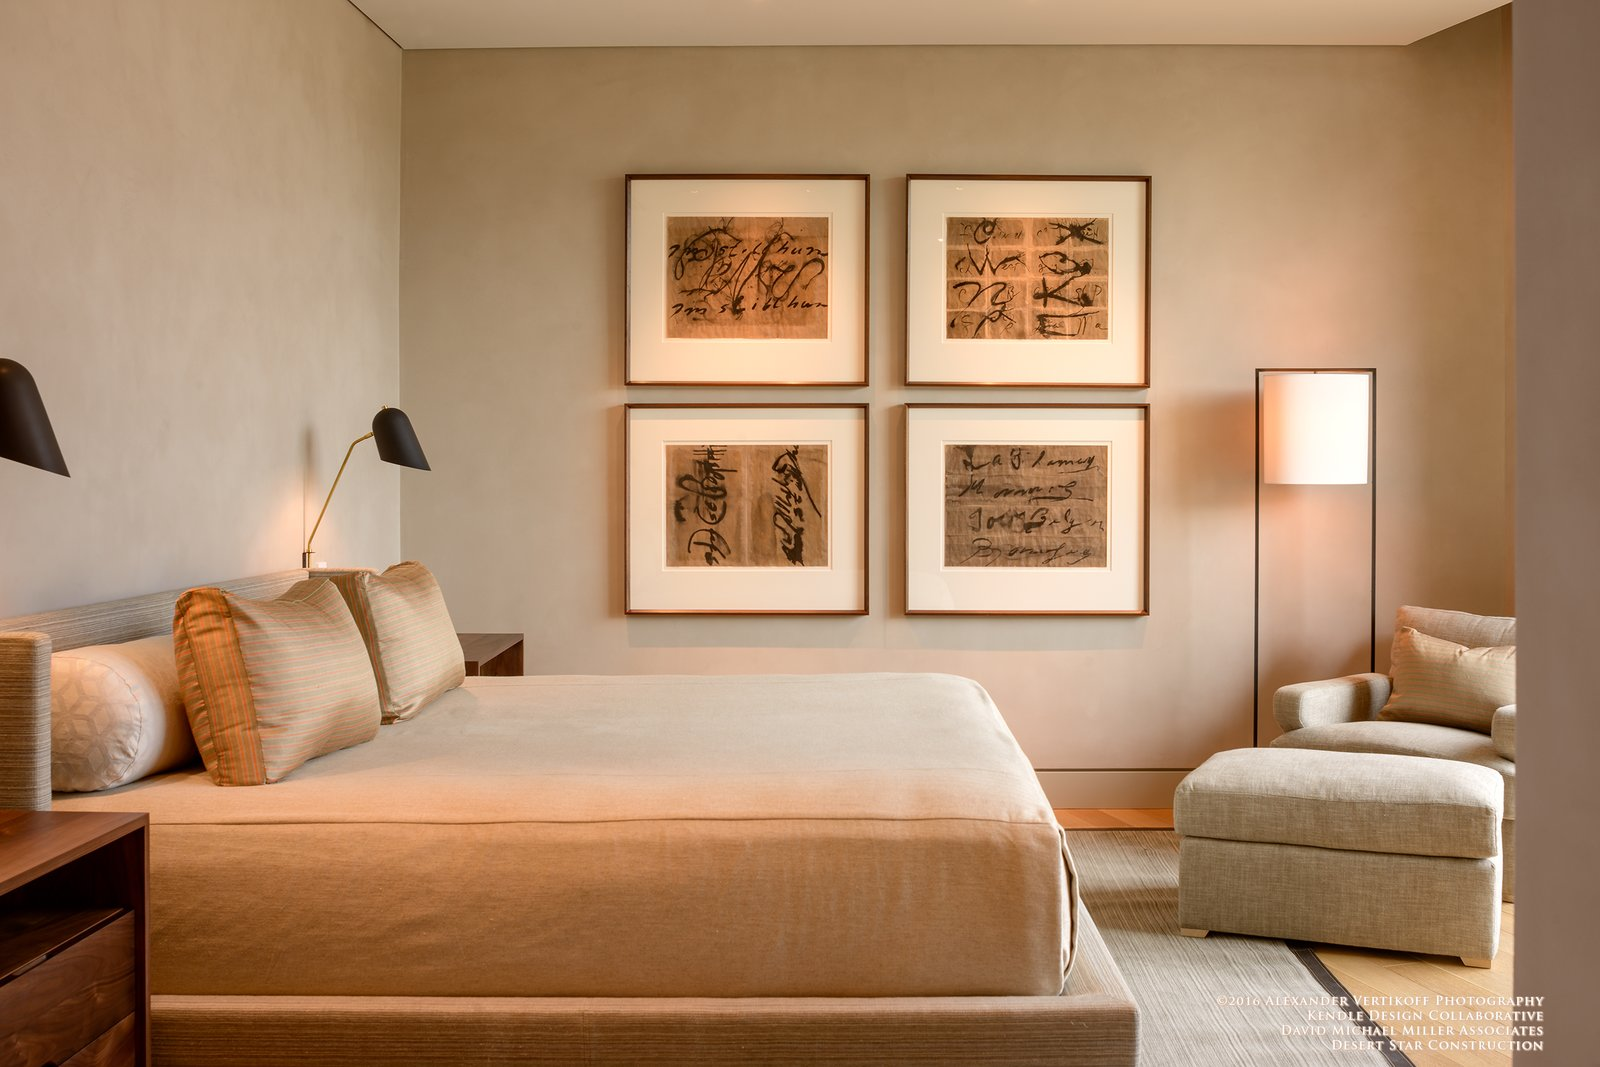 Tagged: Bedroom, Bed, Night Stands, Chair, Recessed Lighting, Floor Lighting, Wall Lighting, and Light Hardwood Floor. Dancing Light by Brent Kendle